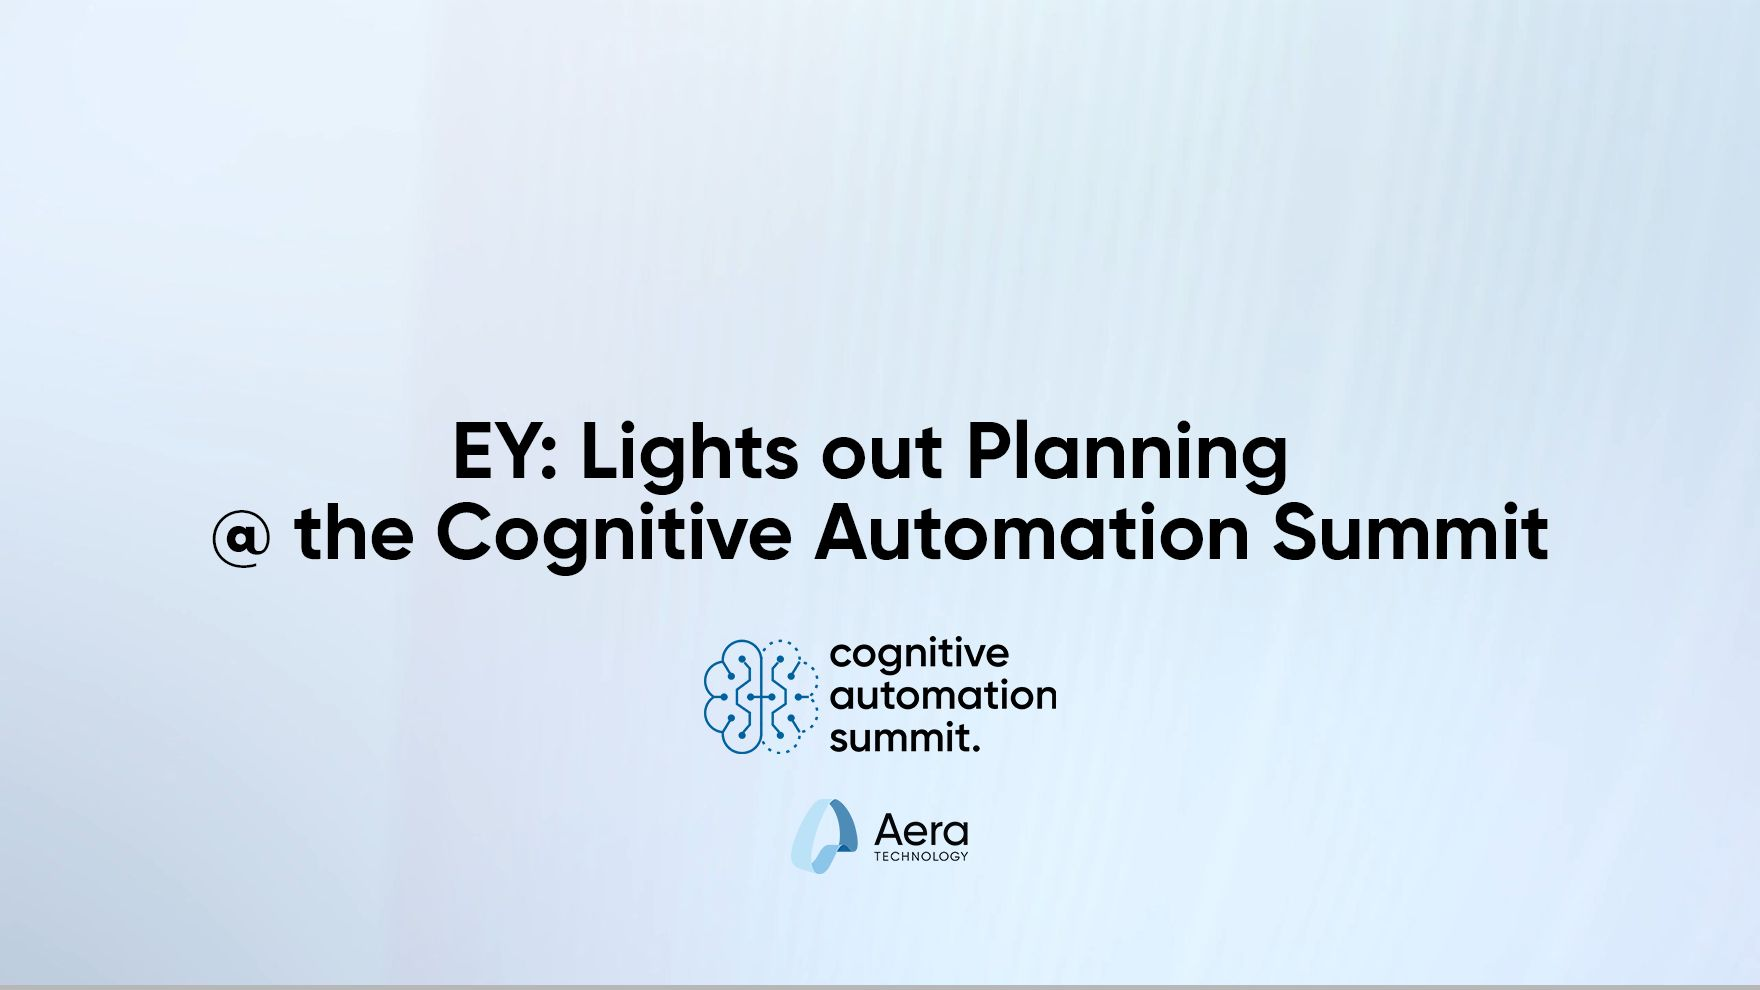 EY: Lights out Planning @ the Cognitive Automation Summit